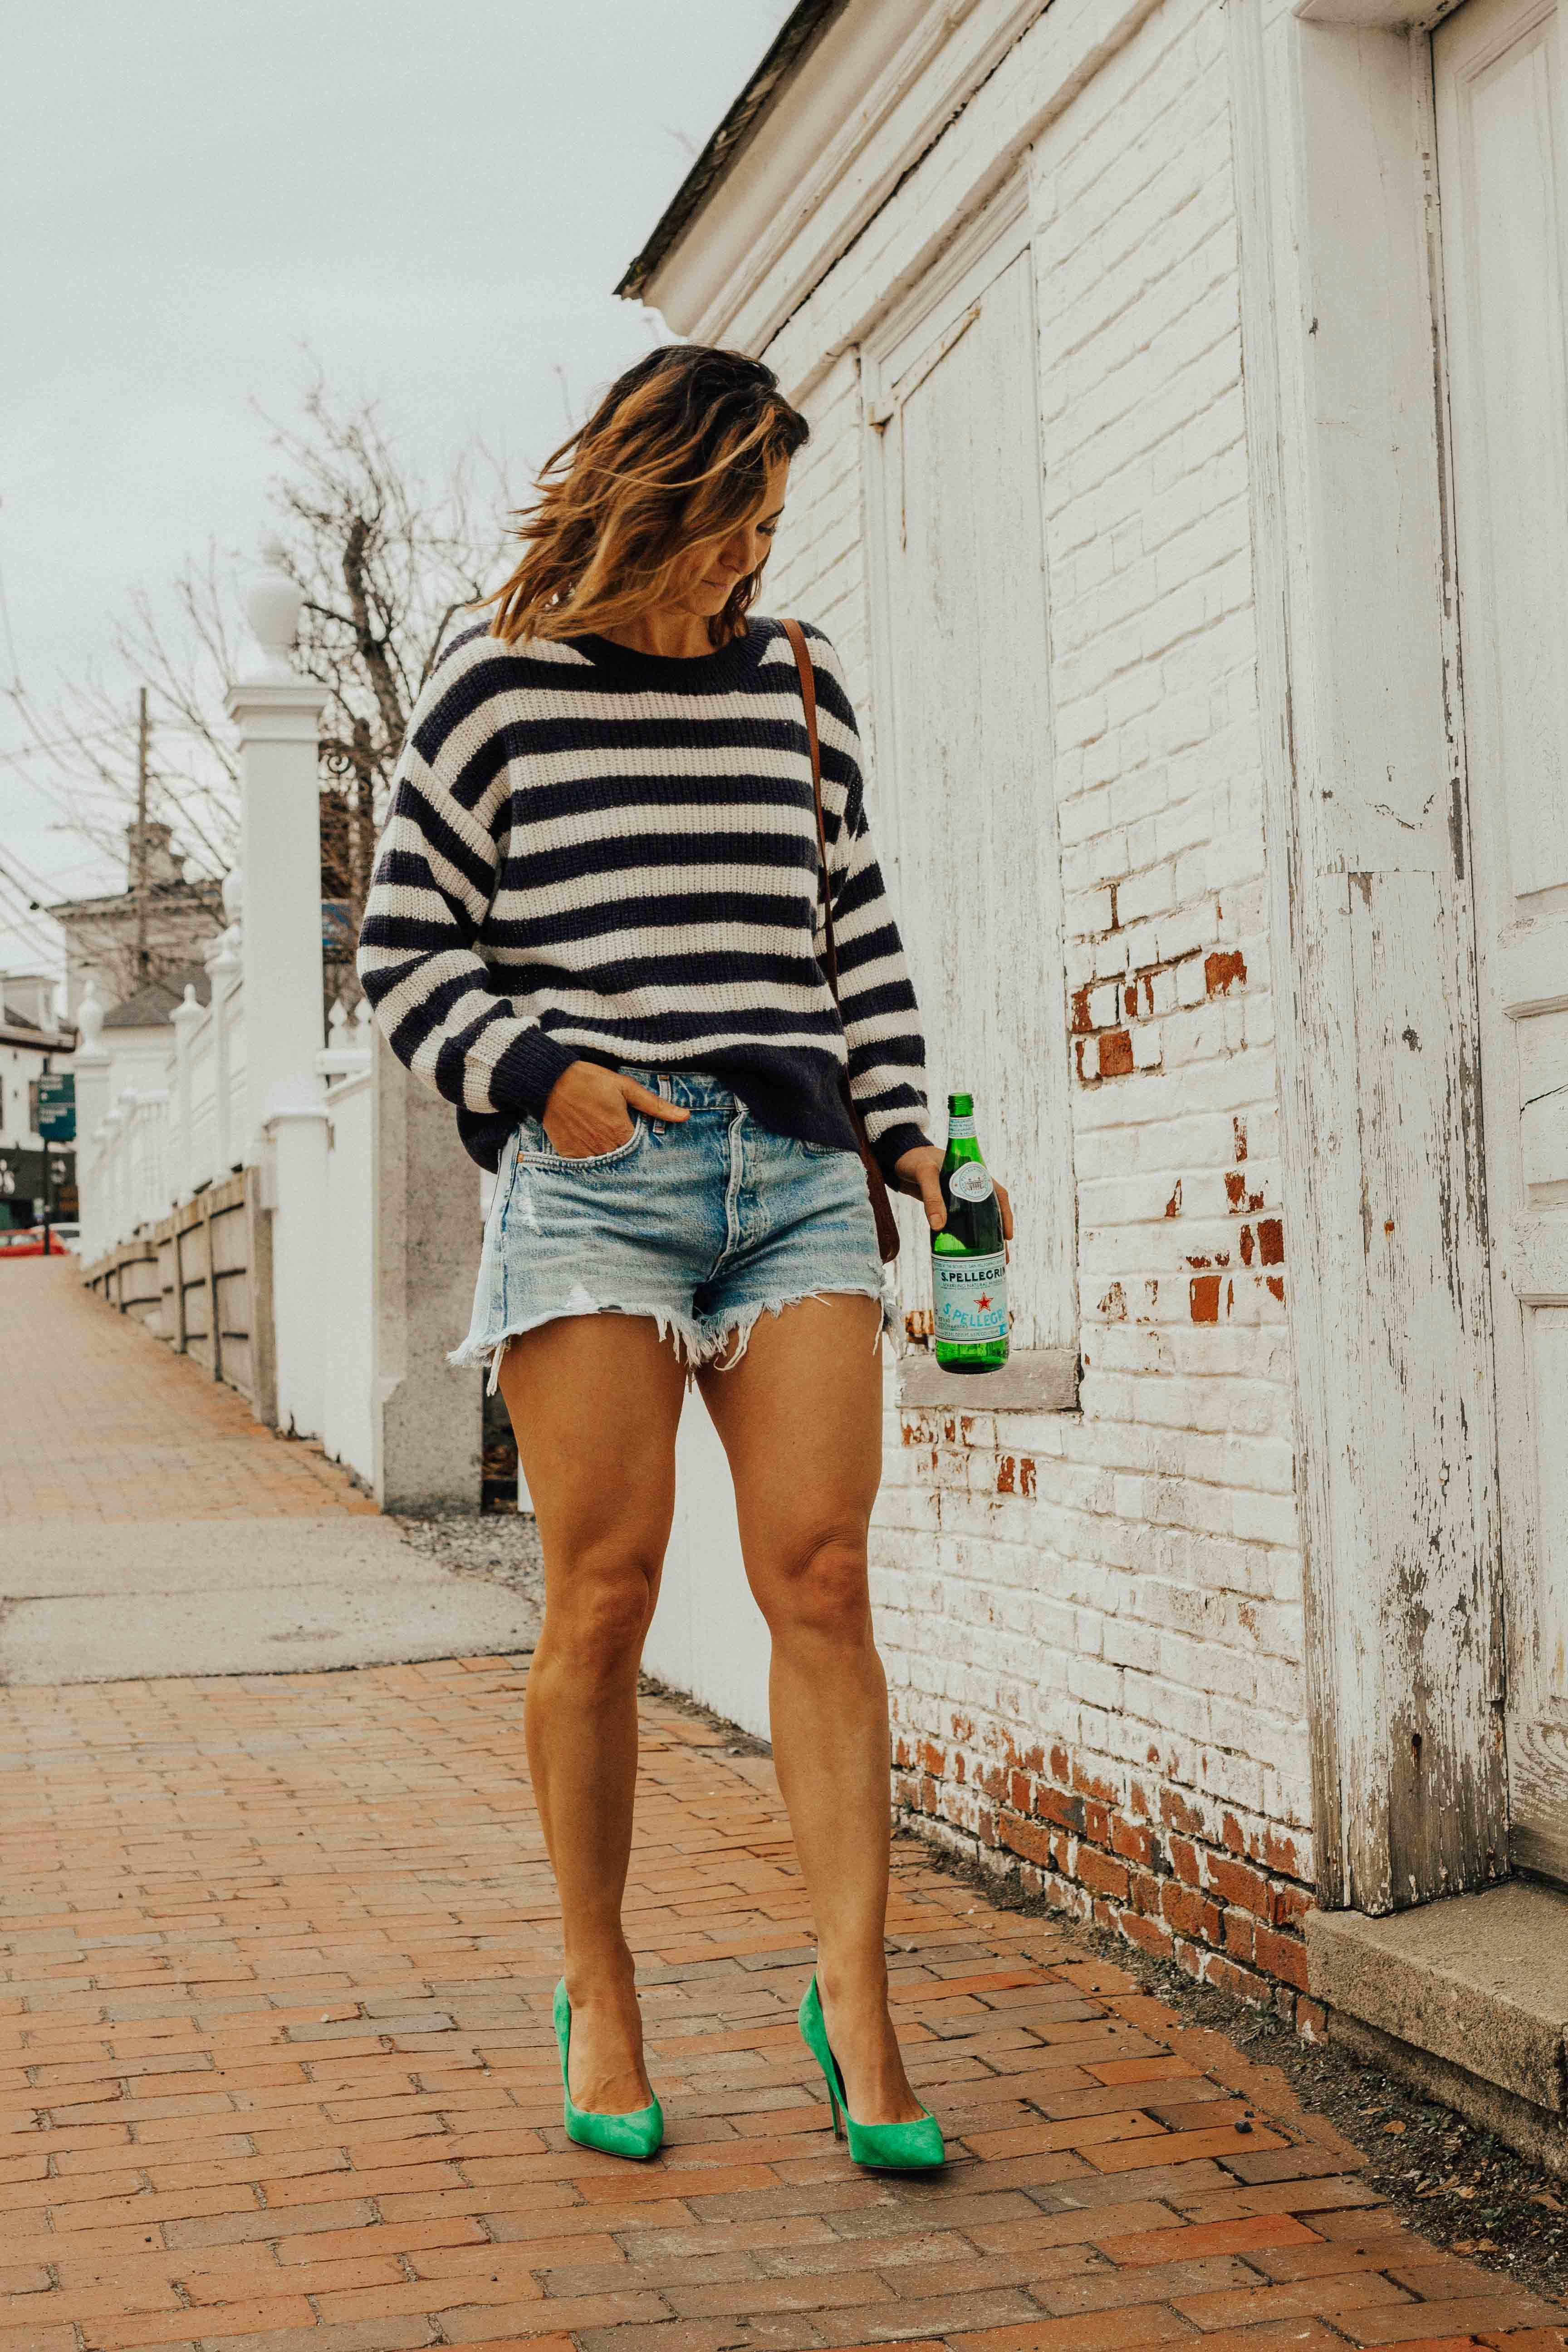 895d4be264 Tips of Finding the Best Denim Shorts for Your Body Type - Denim shorts -  Summer Outfit Ideas - Summer Fashion for Women - Green Heels Outfit - Denim  Shorts ...